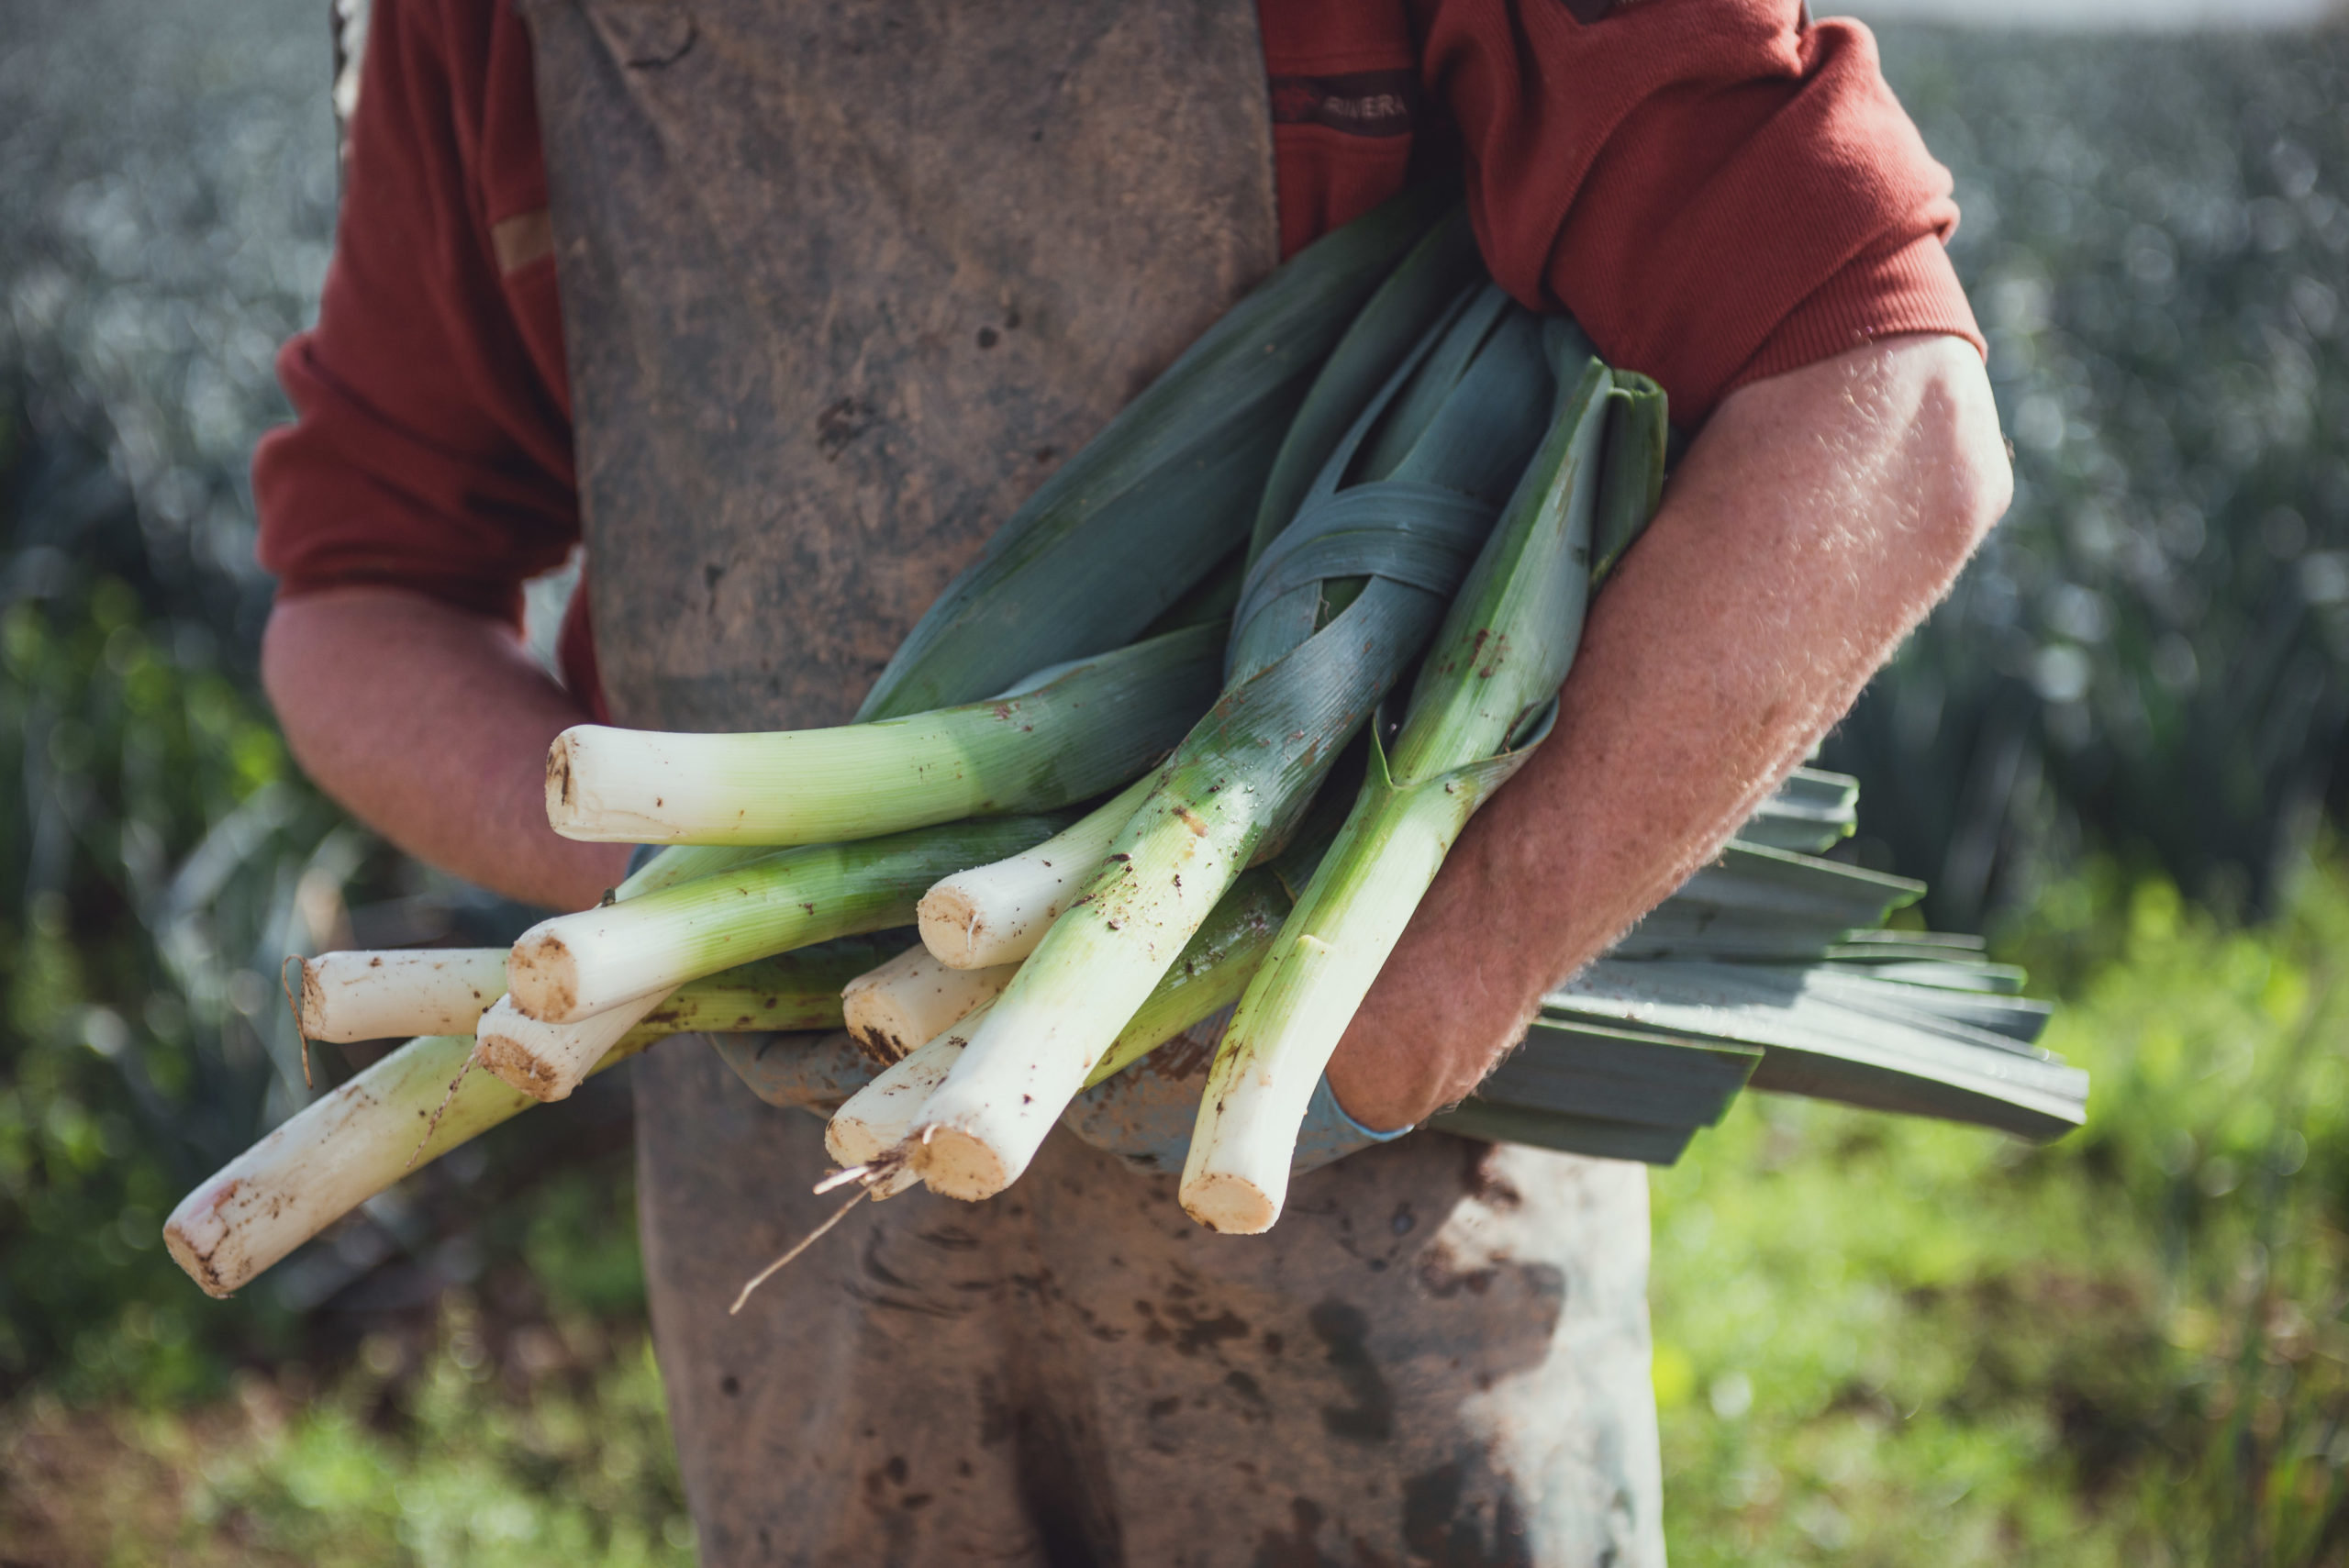 Gavin working in field, snedding leeks